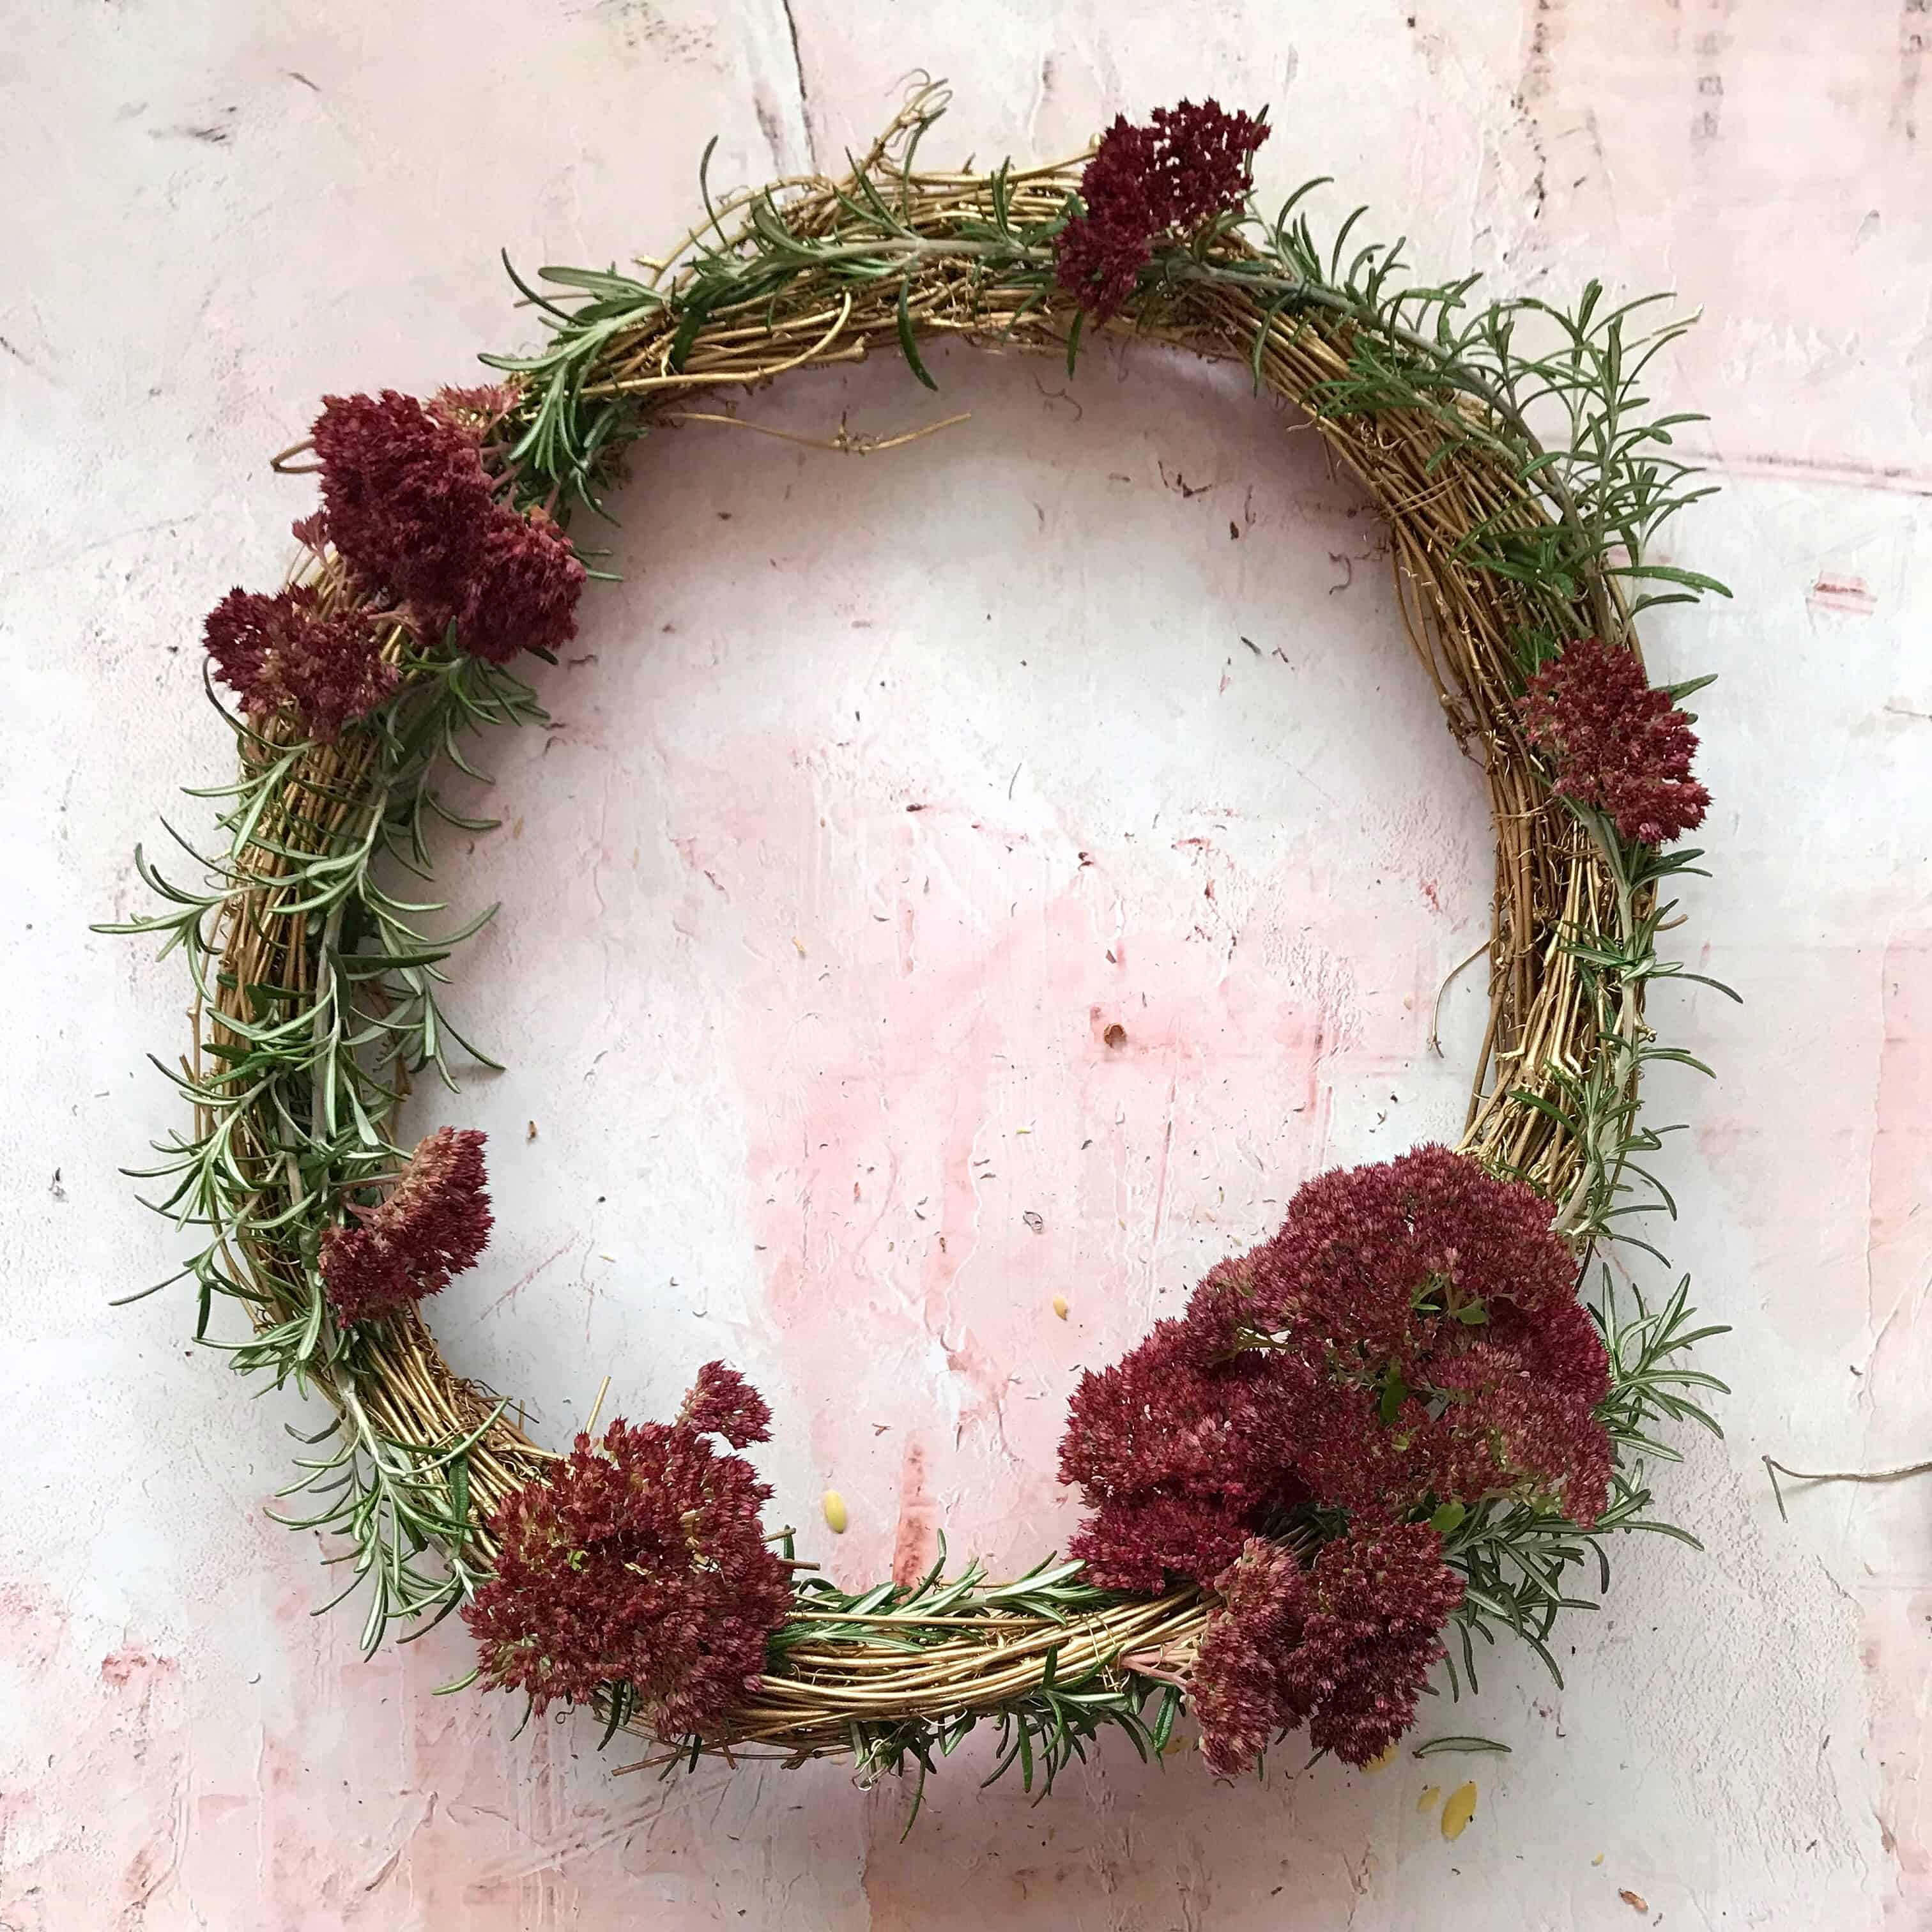 Step 4 to make an easy metallic wreath - build layers of flowers